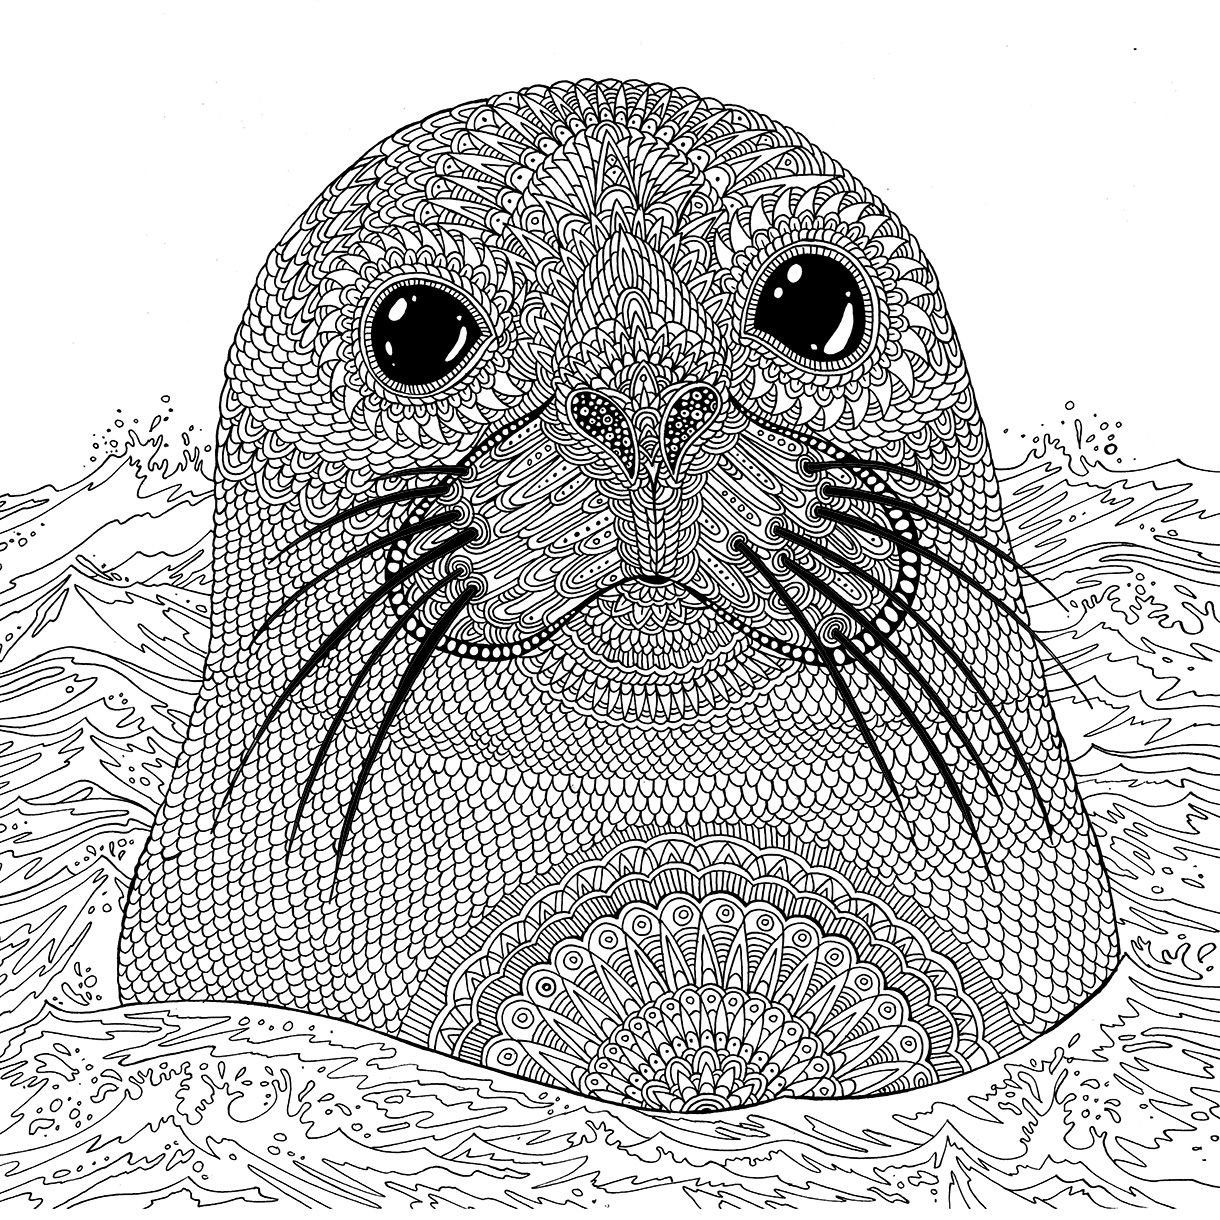 sea life animals coloring pages under the sea coloring pages at getcoloringscom free sea life pages animals coloring